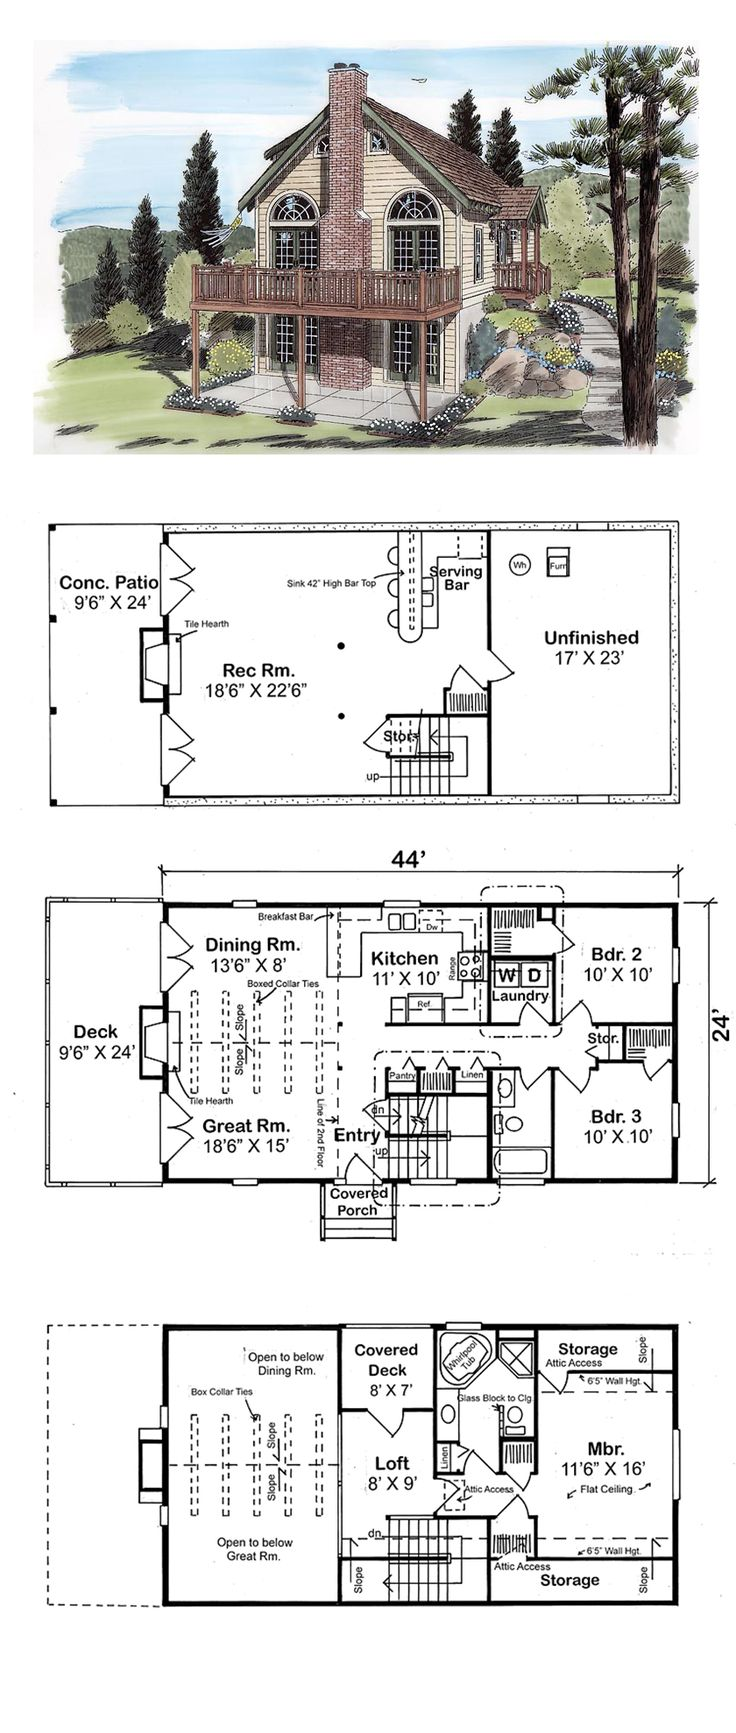 4309ccfed548d0a3b563150cf6f7545c Ranch House Plan With Double Sided Fireplace on house plans with large fireplace, kitchen with double sided fireplace, floor plan with corner fireplace, outdoor fireplace, floor plan living room with fireplace, house plans with center fireplace, kitchen with stone fireplace, porch house plan with fireplace, dining room double sided fireplace, house plans with double shower, house plans with central fireplace, homes with double sided fireplace,